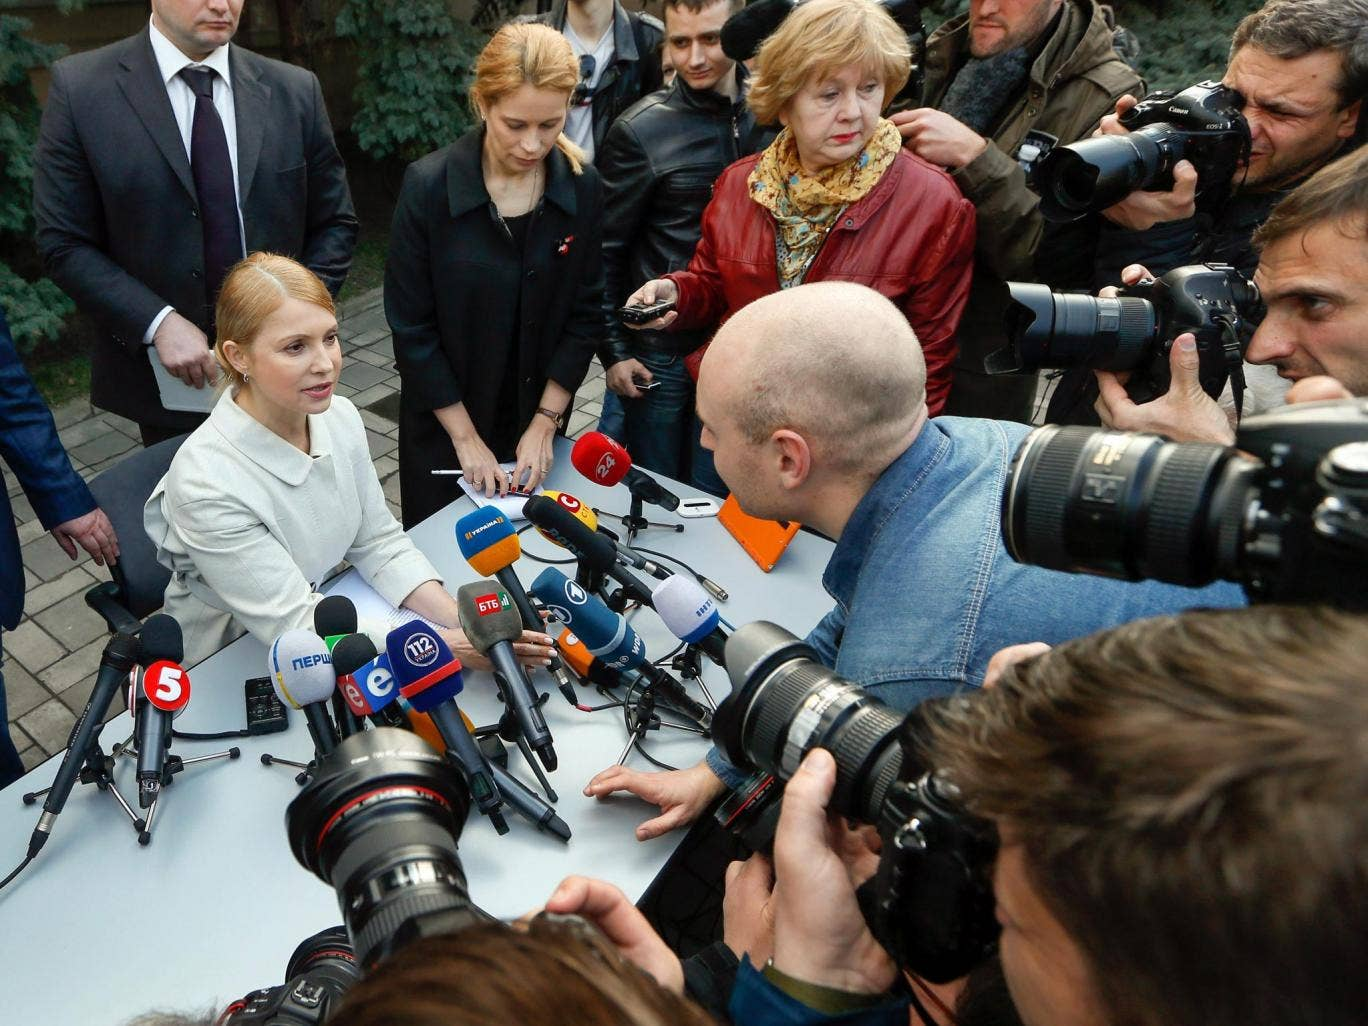 Yulia Tymoshenko (seated) at a press conference in Kiev yesterday, when she confirmed that she will run for president in Ukraine's elections on 25 May